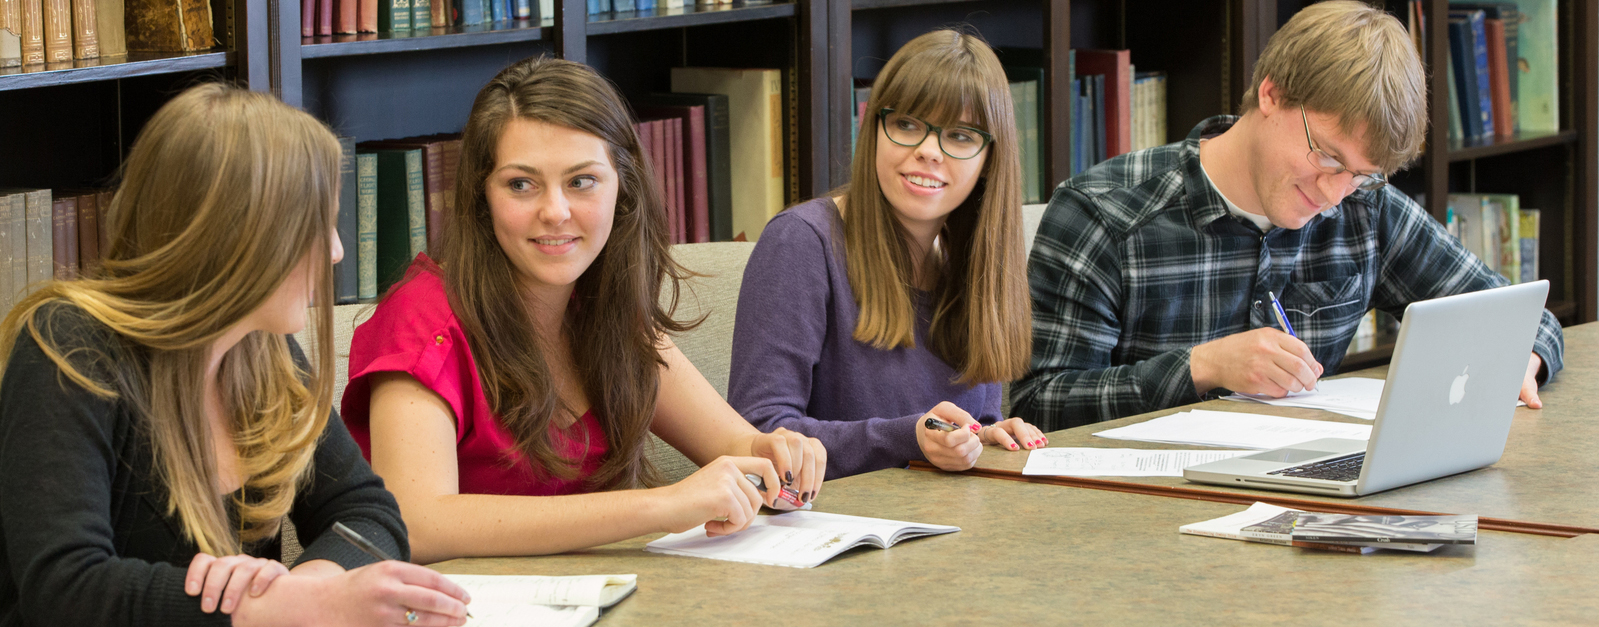 scholarships for creative writing graduate students In 2005, the university of montana established the greta wrolstand travel award as another scholarship opportunity for graduate students majoring in the creative.